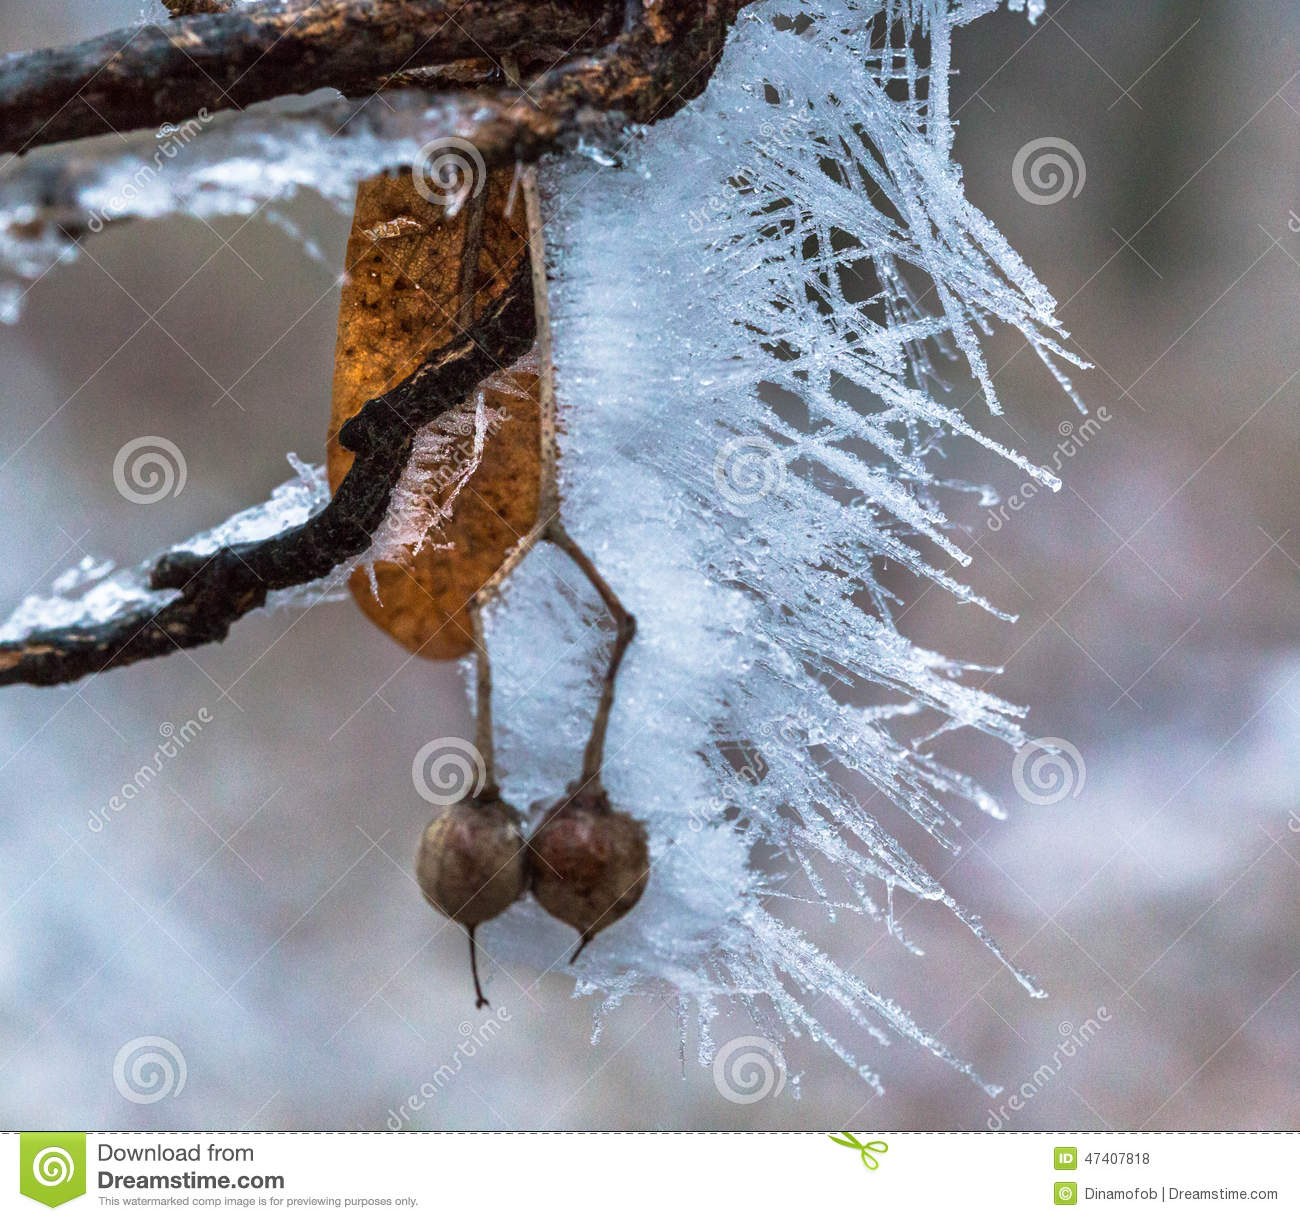 Stock Photo Frozen Nuts Detail Captured Woods Today I Was Walking Image47407818 on cartoon ice pops